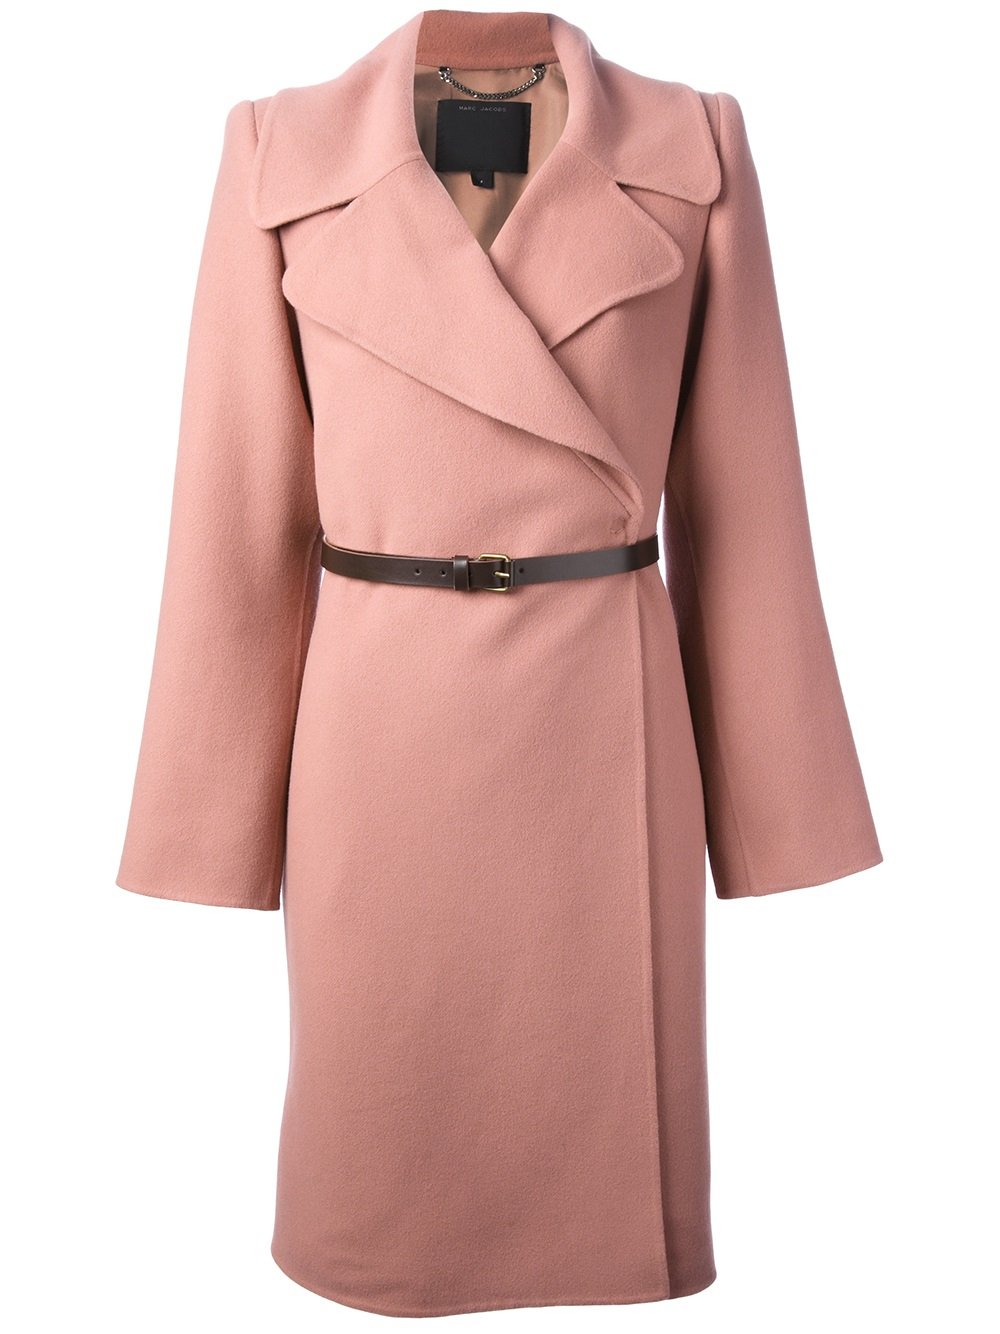 Marc jacobs Belted Coat in Pink | Lyst